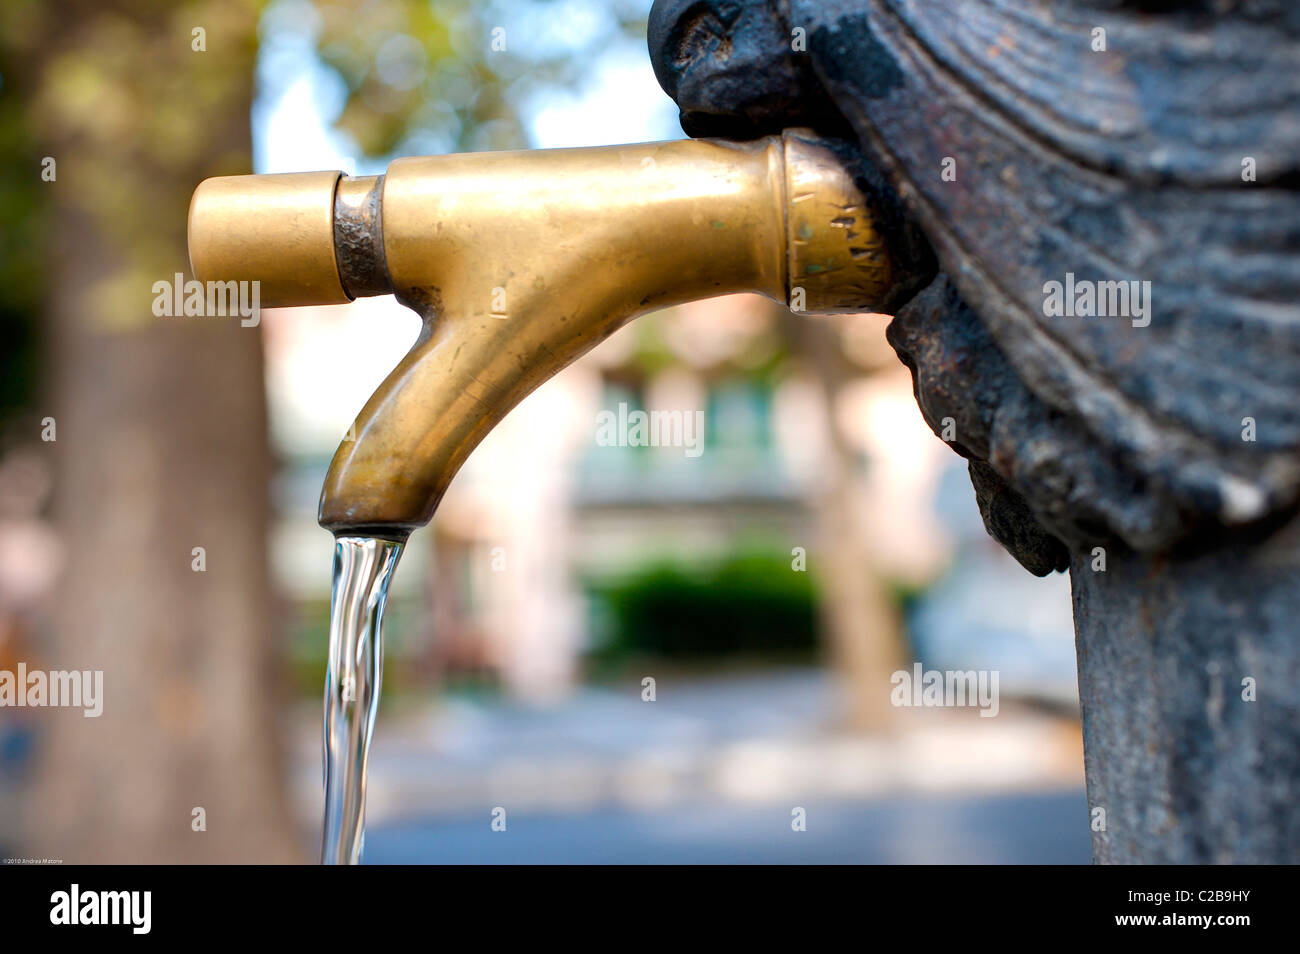 A public water fountain faucet - Stock Image